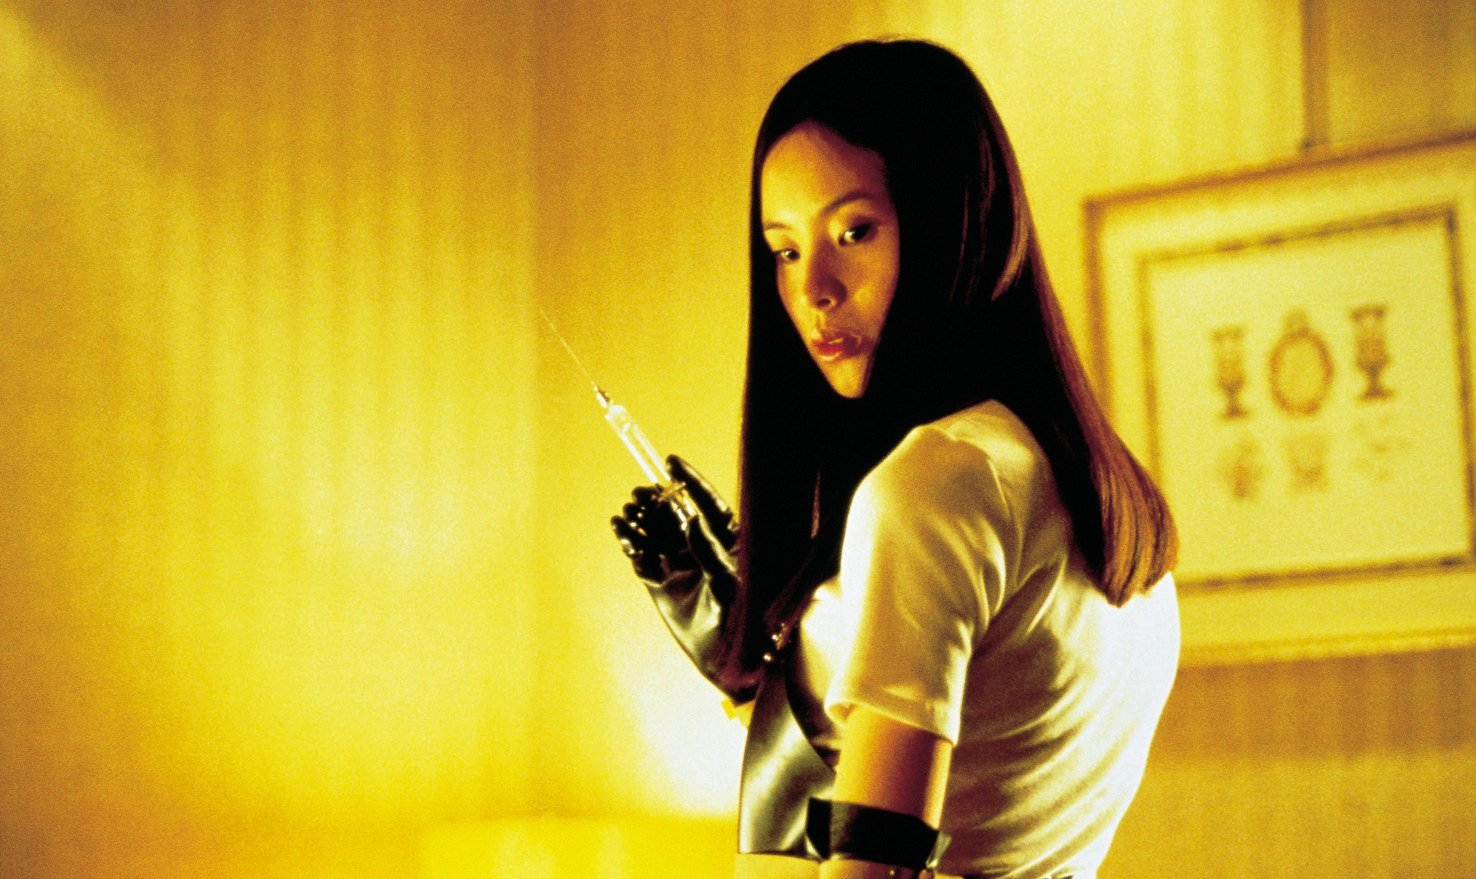 AUDITION (1999 / DCP) - Fri Feb 15th 11pm / Music Box Theatre, Chicago ILAUDITION was the turn-of-the-millenium flash point signaling the talent of Takashi Miike: a film artist twice as prolific as Fassbinder, a provocateur as multifaceted as Von Trier and a genre-bender as bent as David Lynch. Shocking arthouses worldwide with its white-knuckle finale and ingeniously Sirkian slow-burn leadup, AUDITION trailblazed a fresh Asian horror wave across American screens, carefully pulling the audience through a wrenching exploration of deep male fears and the stereotype of submissive Japanese women. New Restoration!More Info HERE